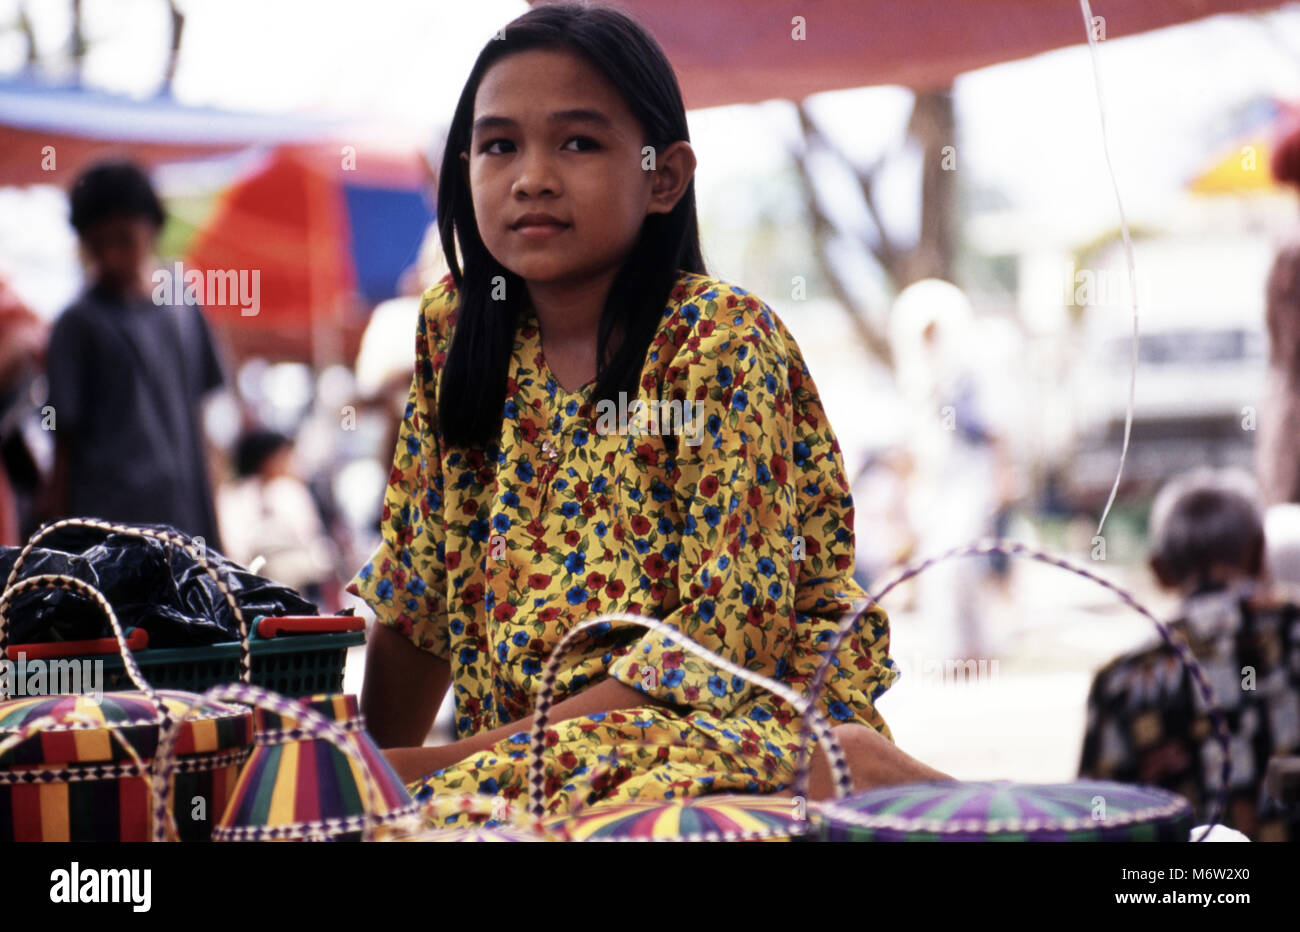 A young, indigenous, ethnic Bajau girl in a brightly coloured dress at the market in Kota Belud, Sabah, Borneo, - Stock Image